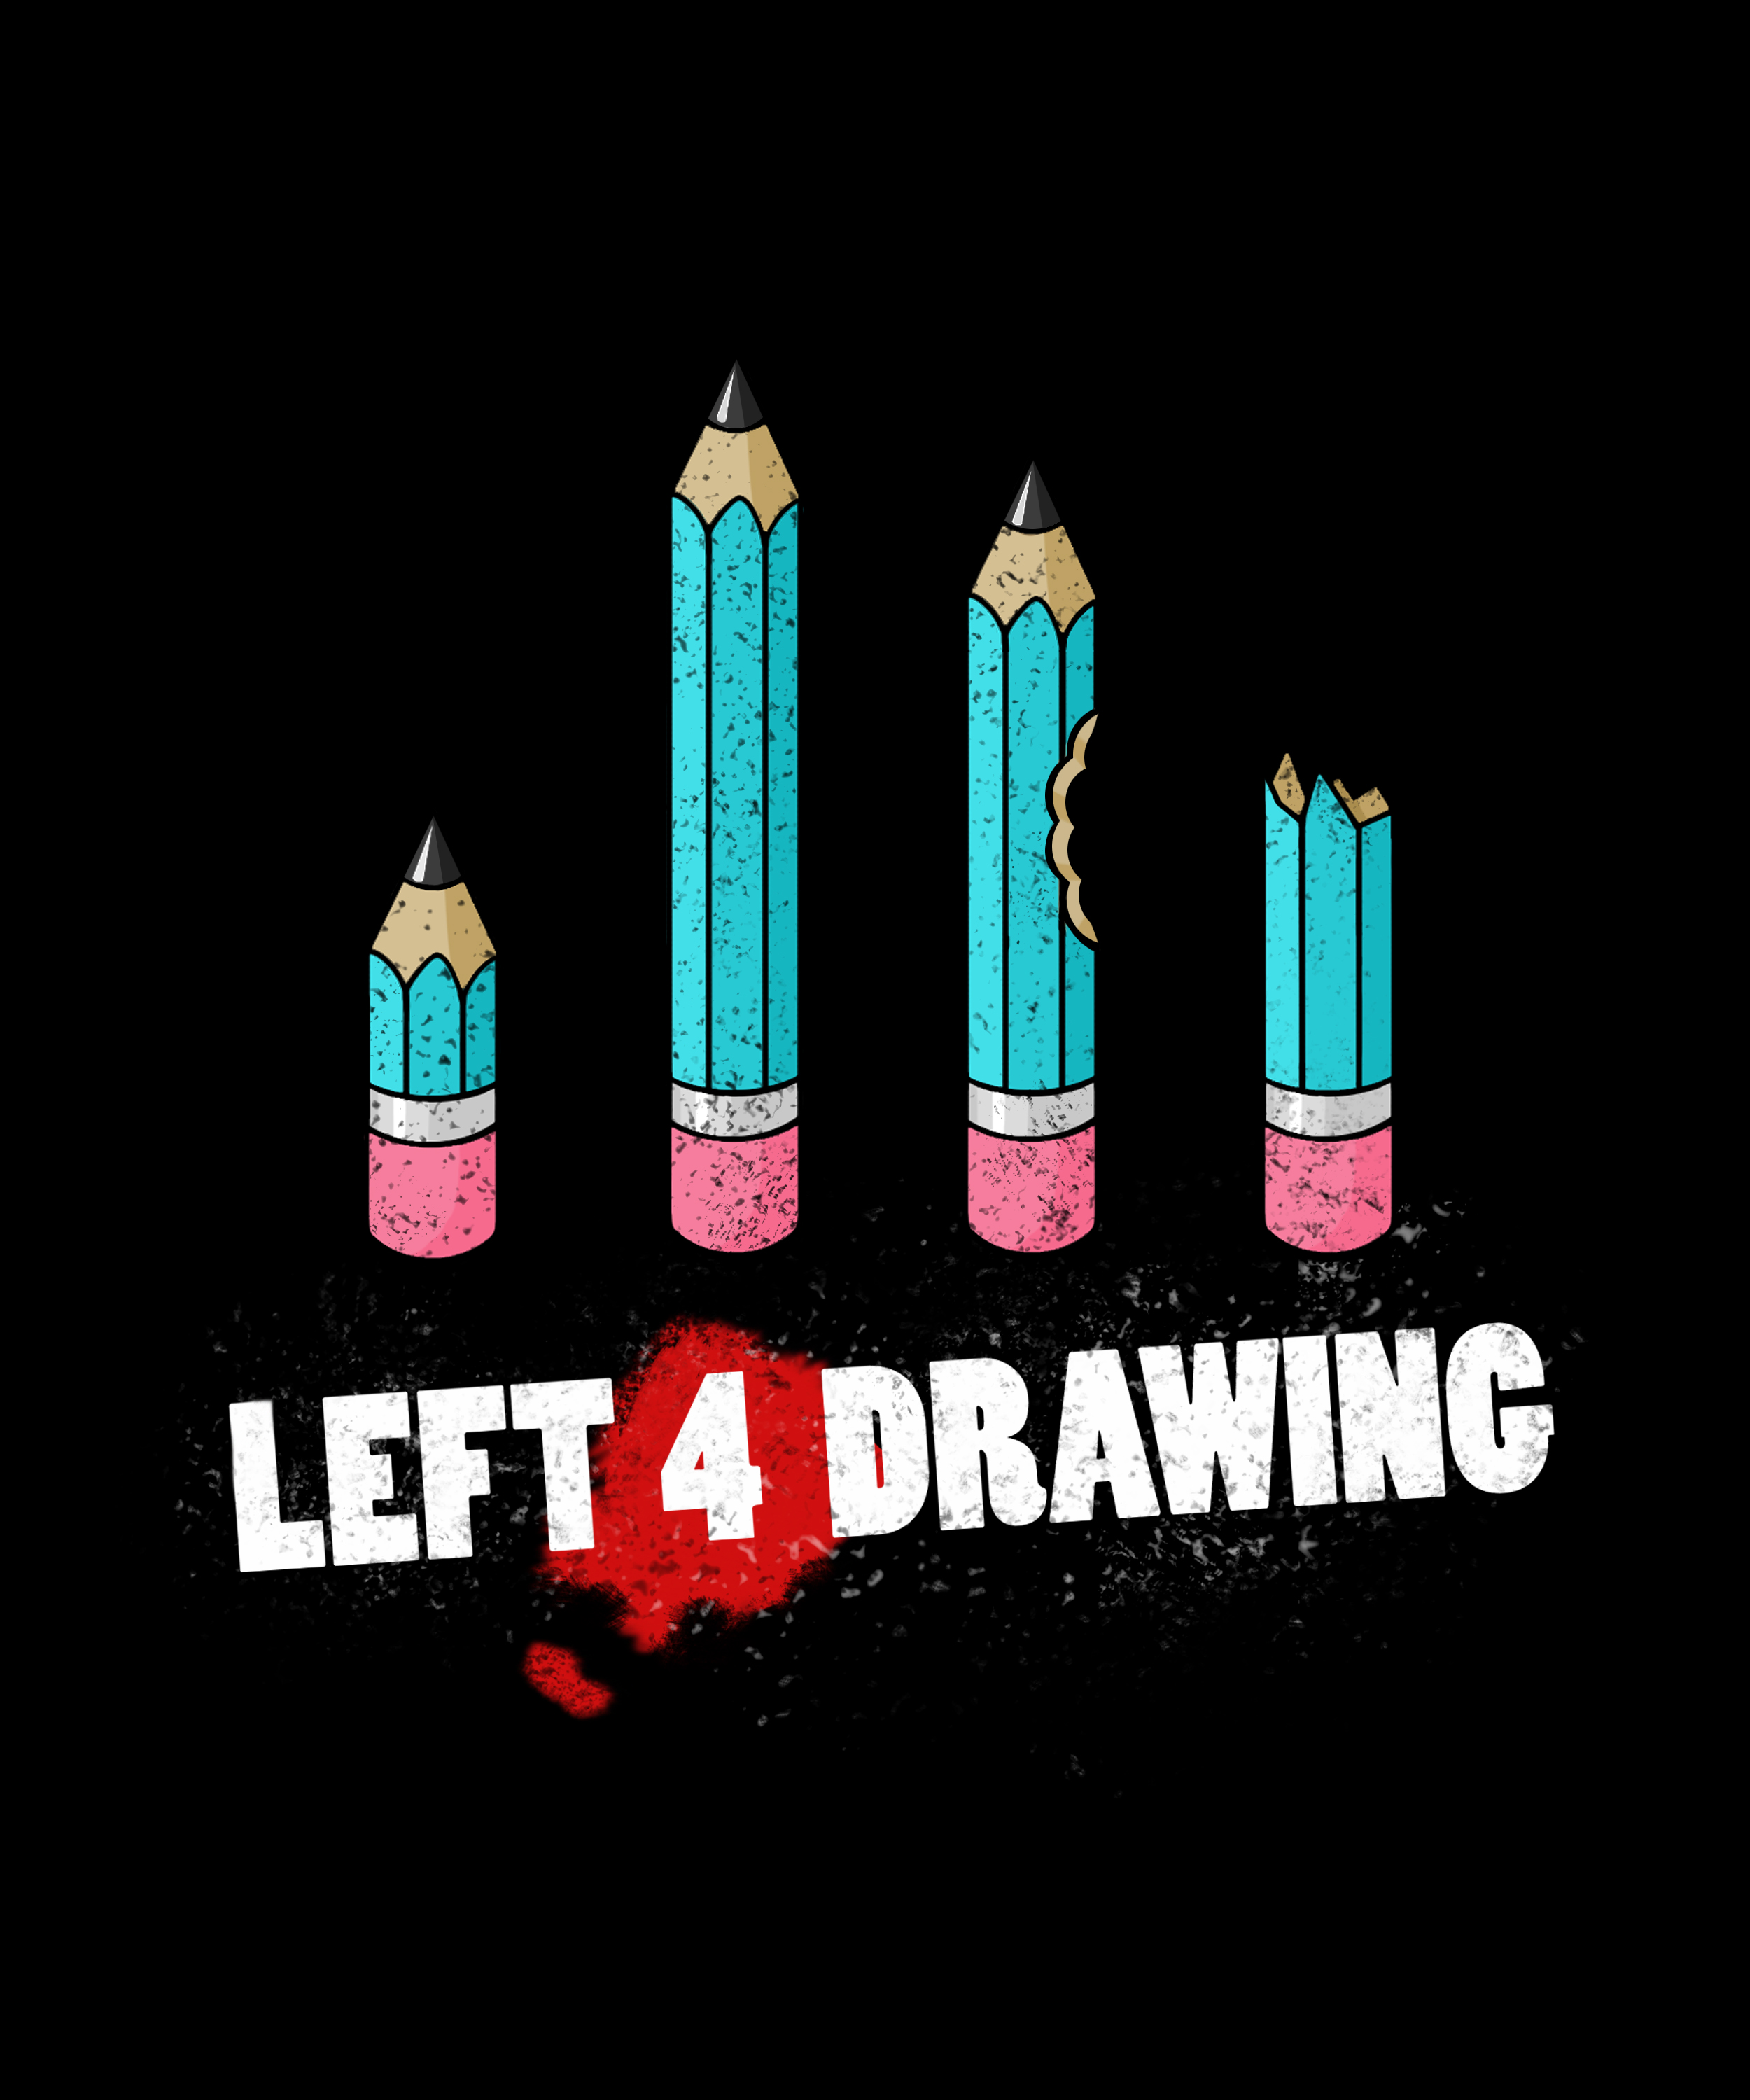 Left 4 Drawing